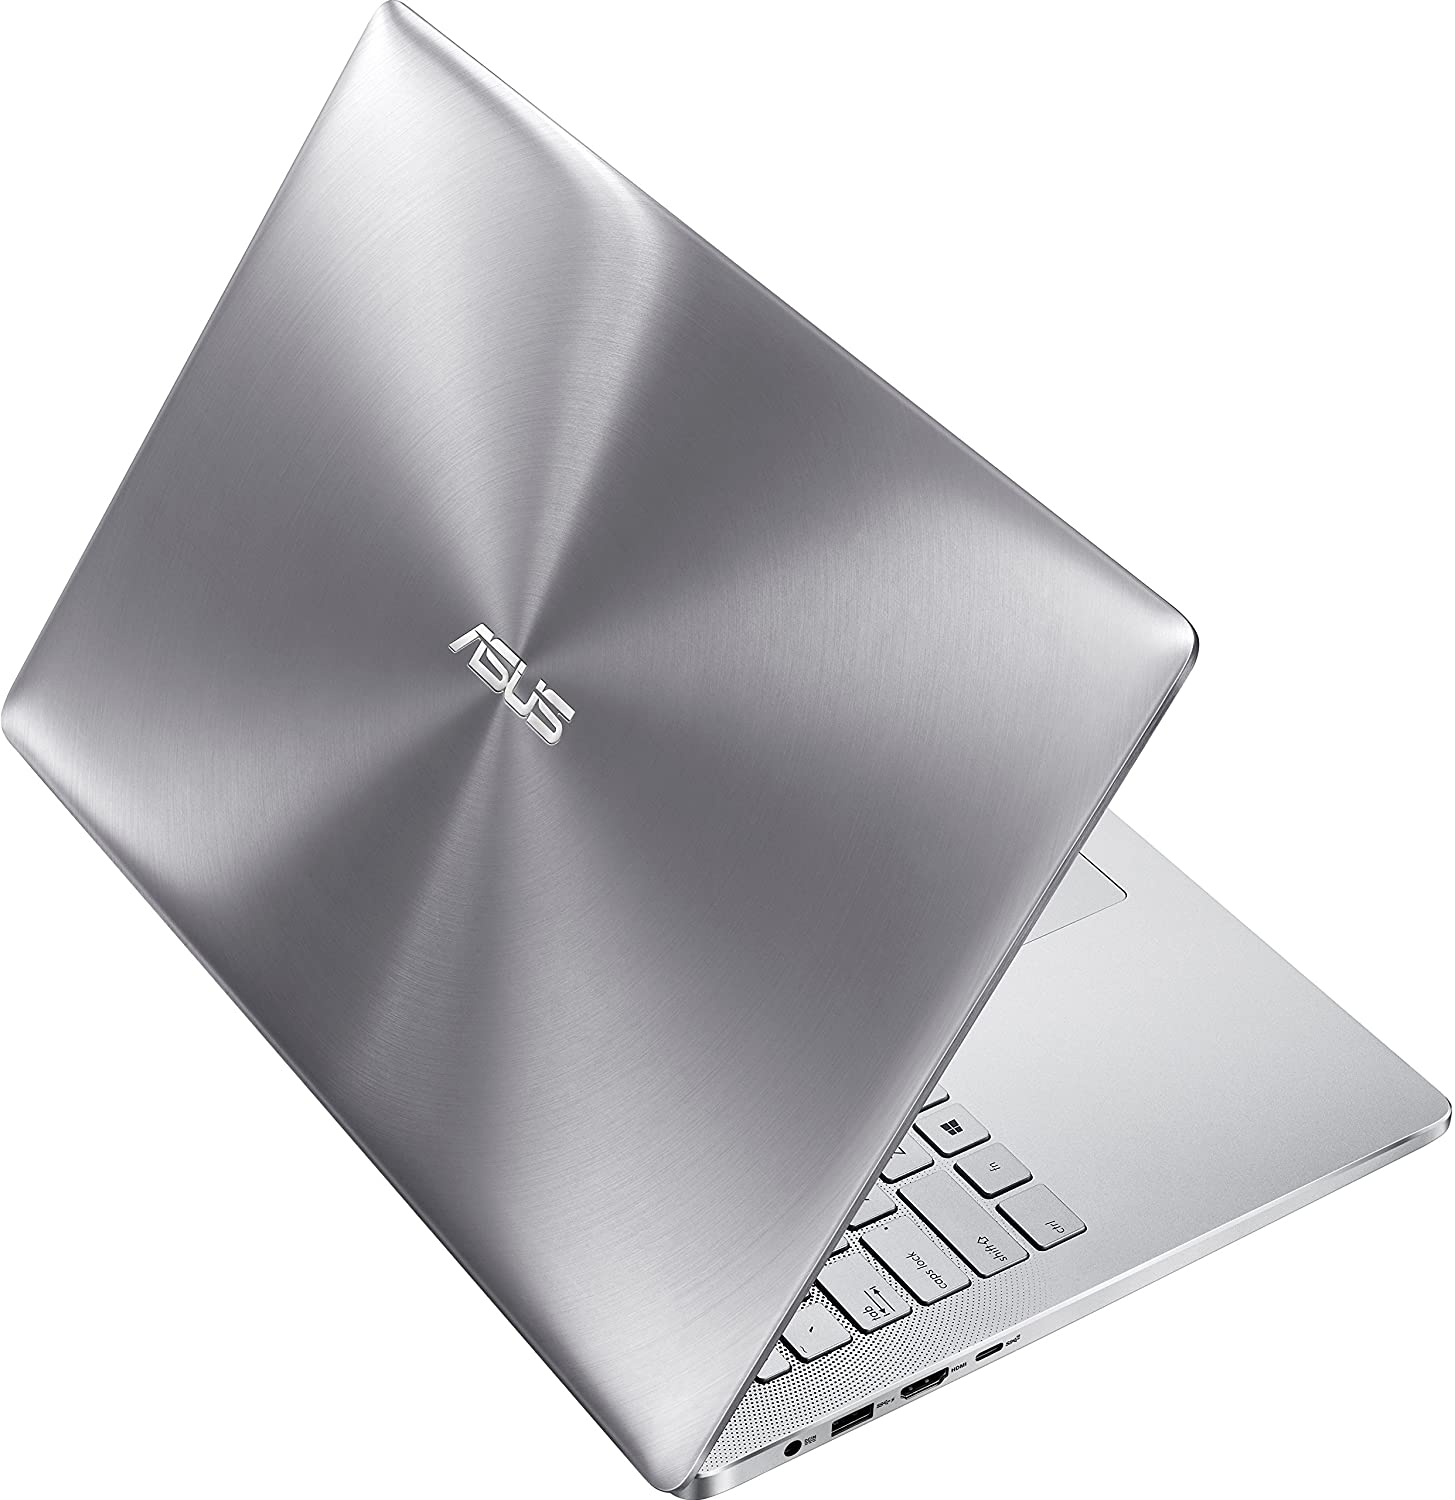 ASUS ultrabook for programming